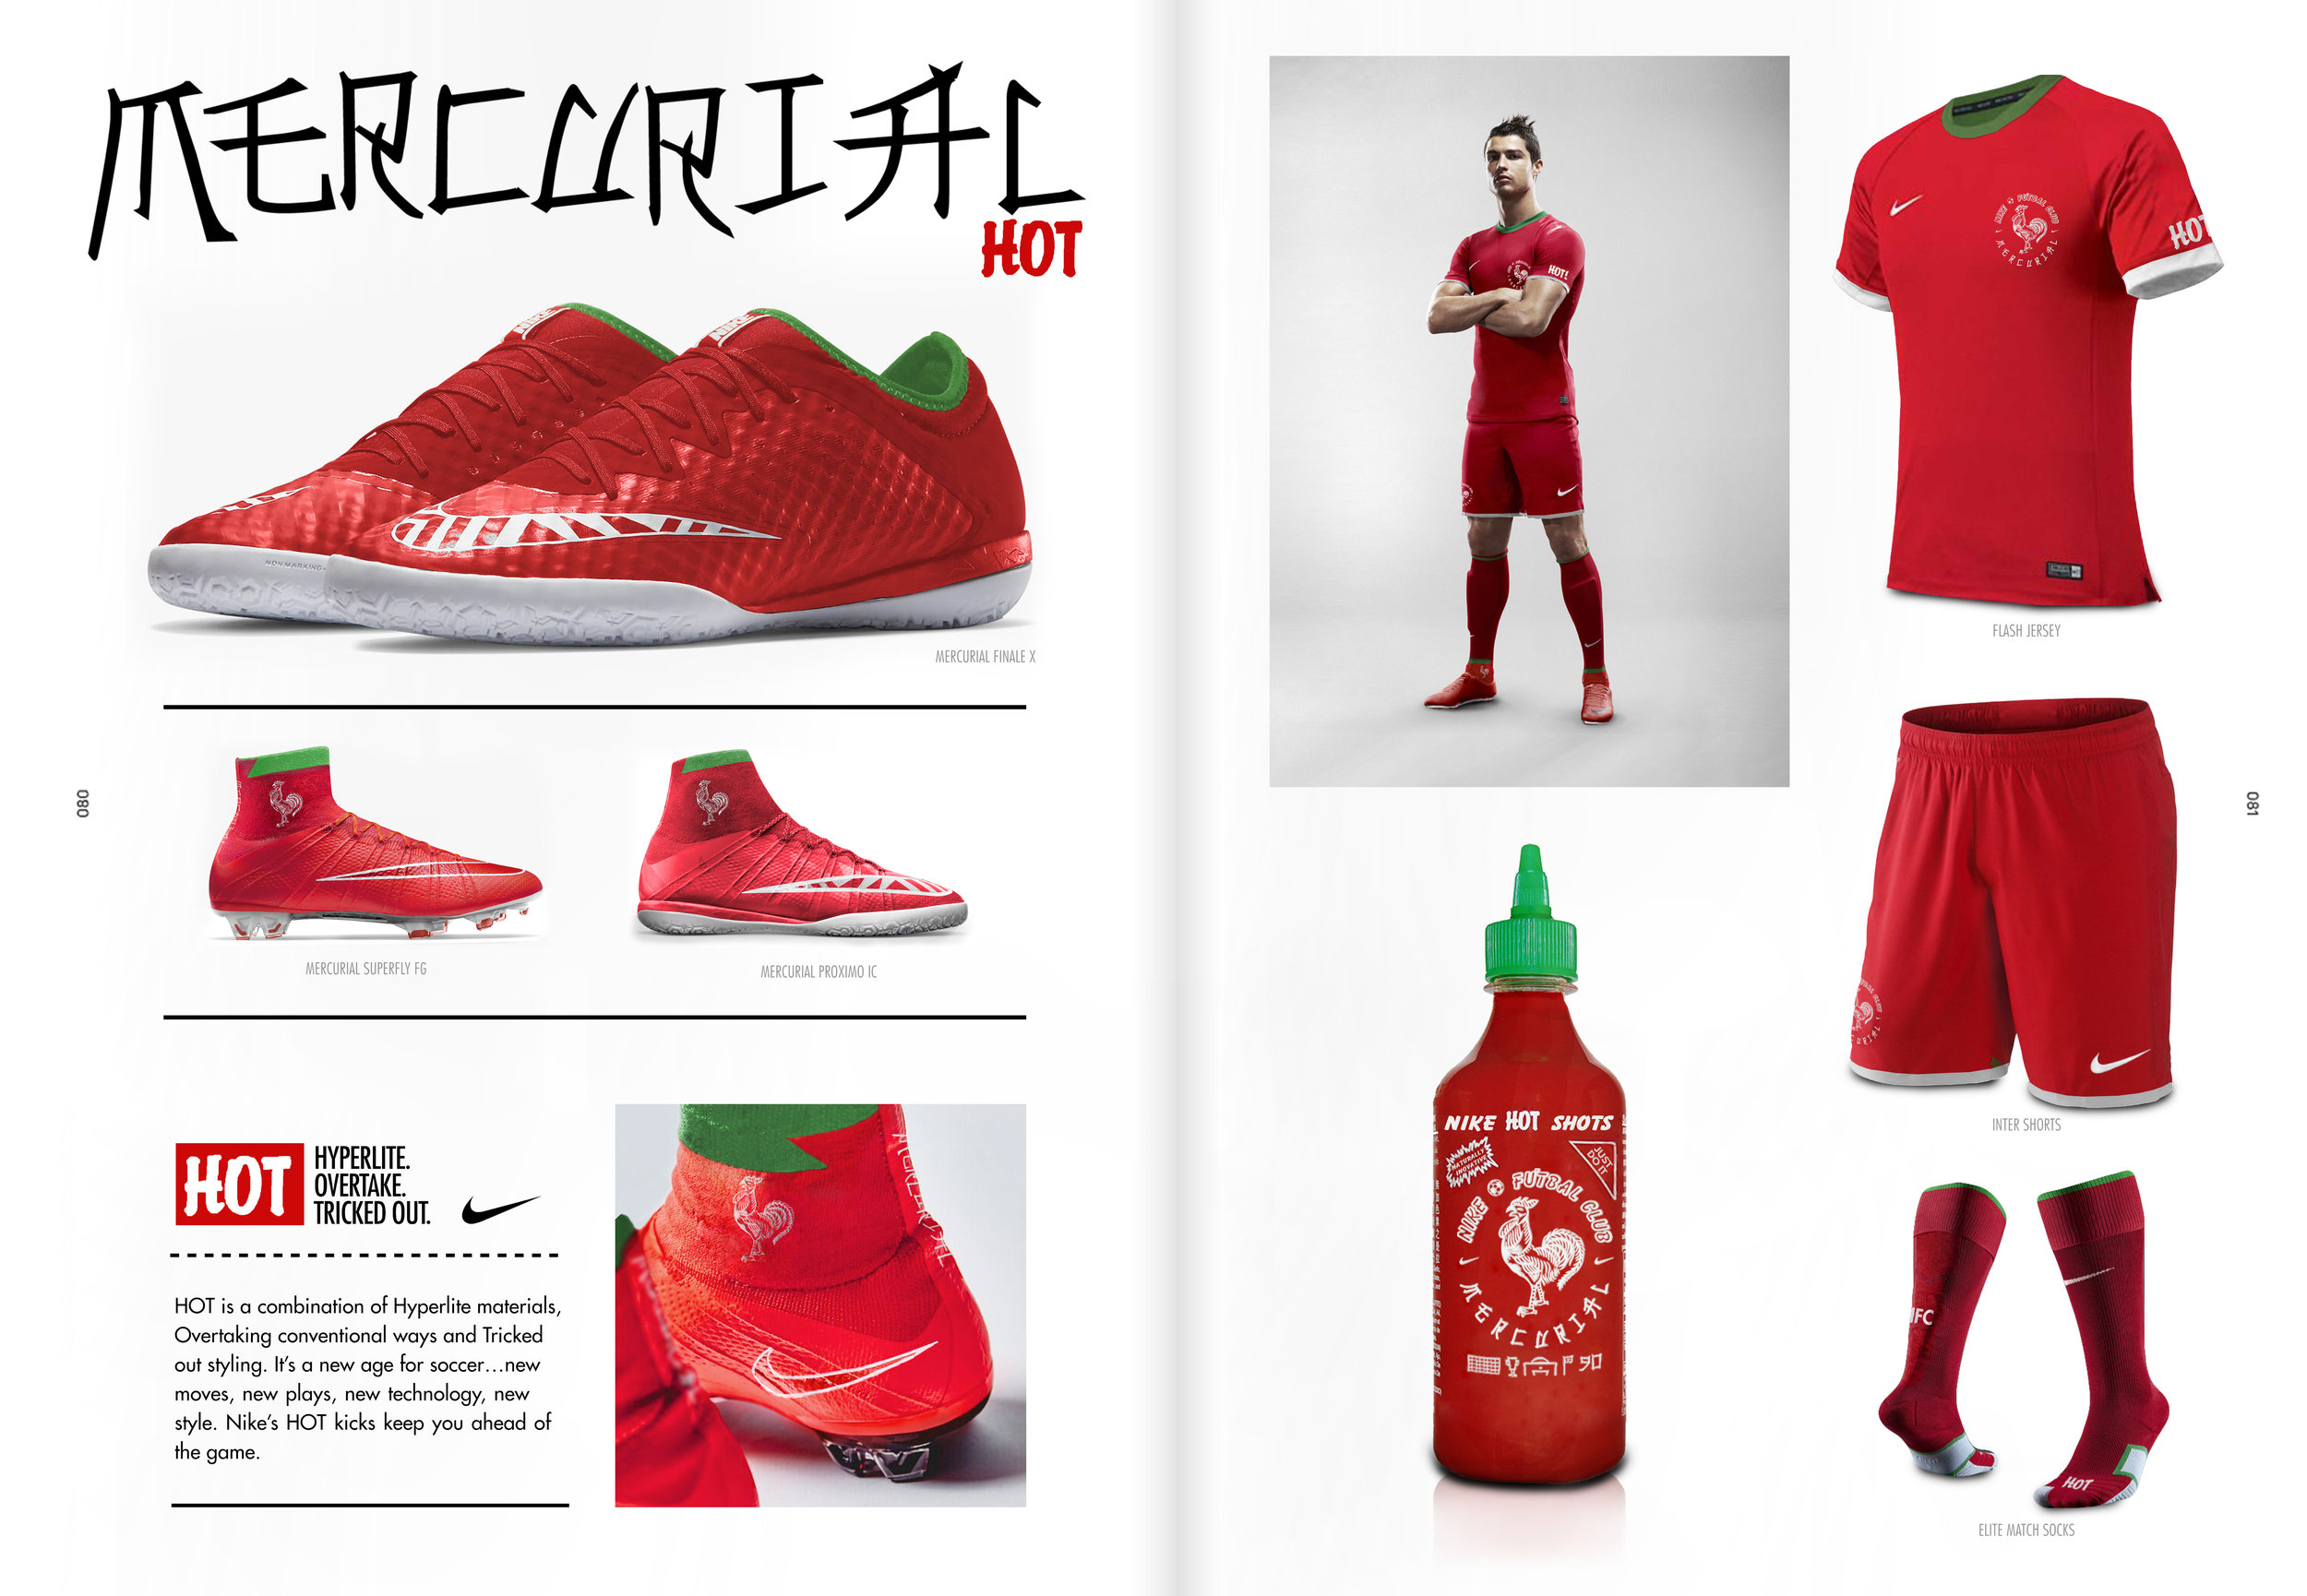 Nike-HOT-catalog pages.jpg